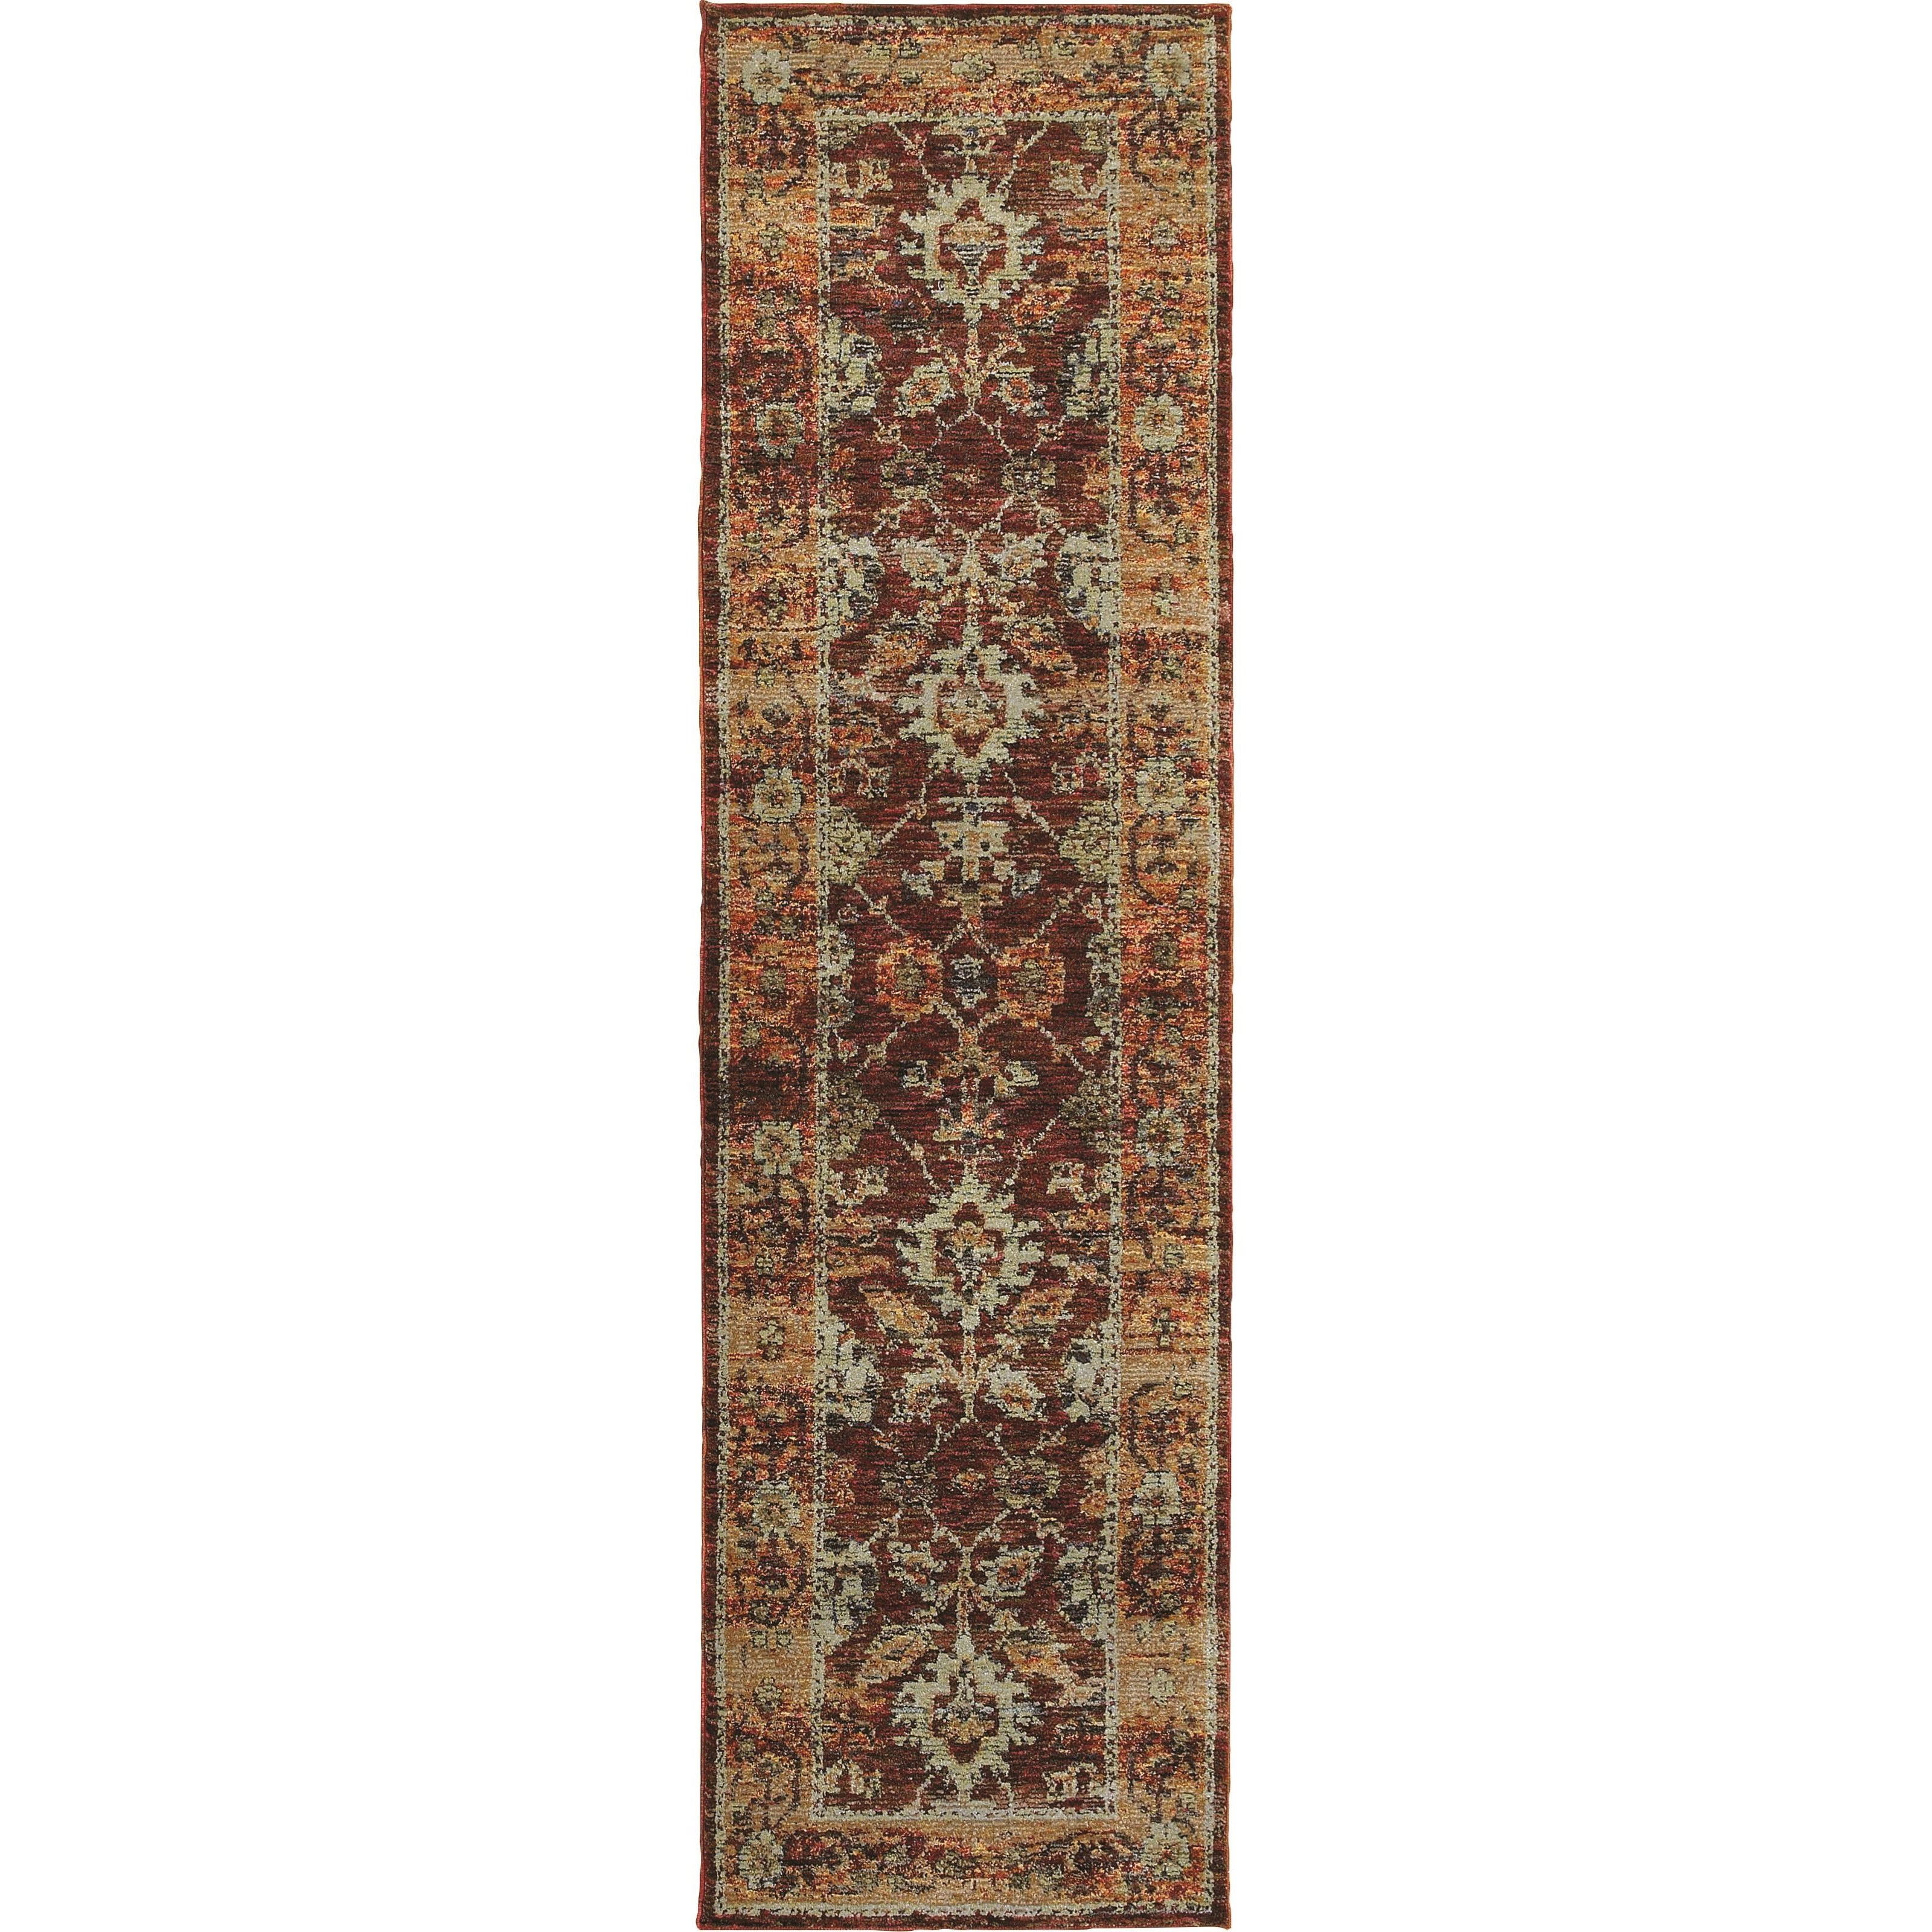 "2' 3"" X  8' 0"" Casual Red/ Gold Runner Rug"